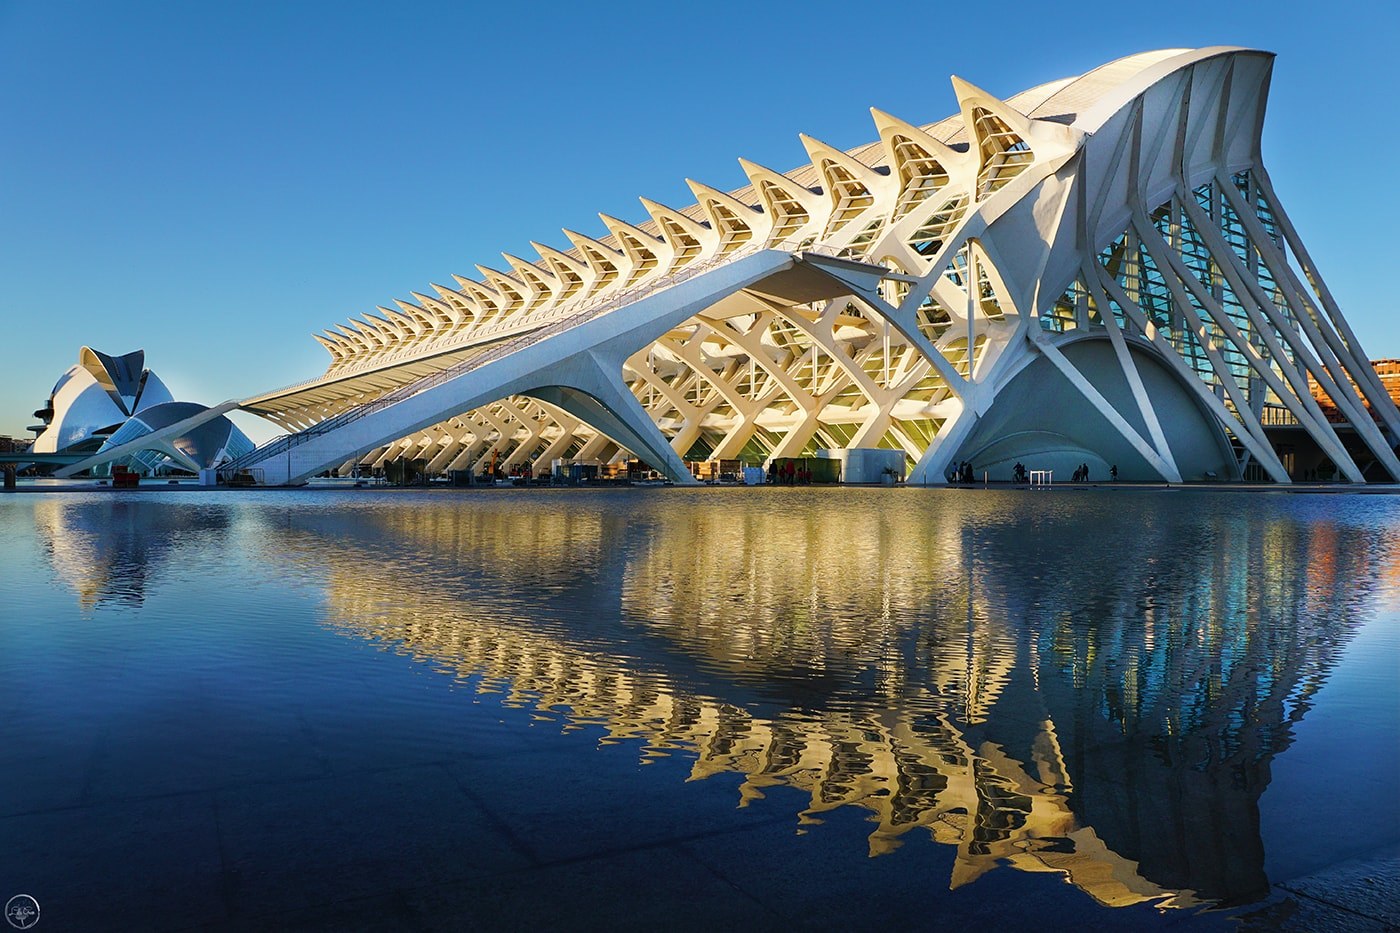 Museo De Las Ciencias Príncipe Felipe, City of Arts and Sciences